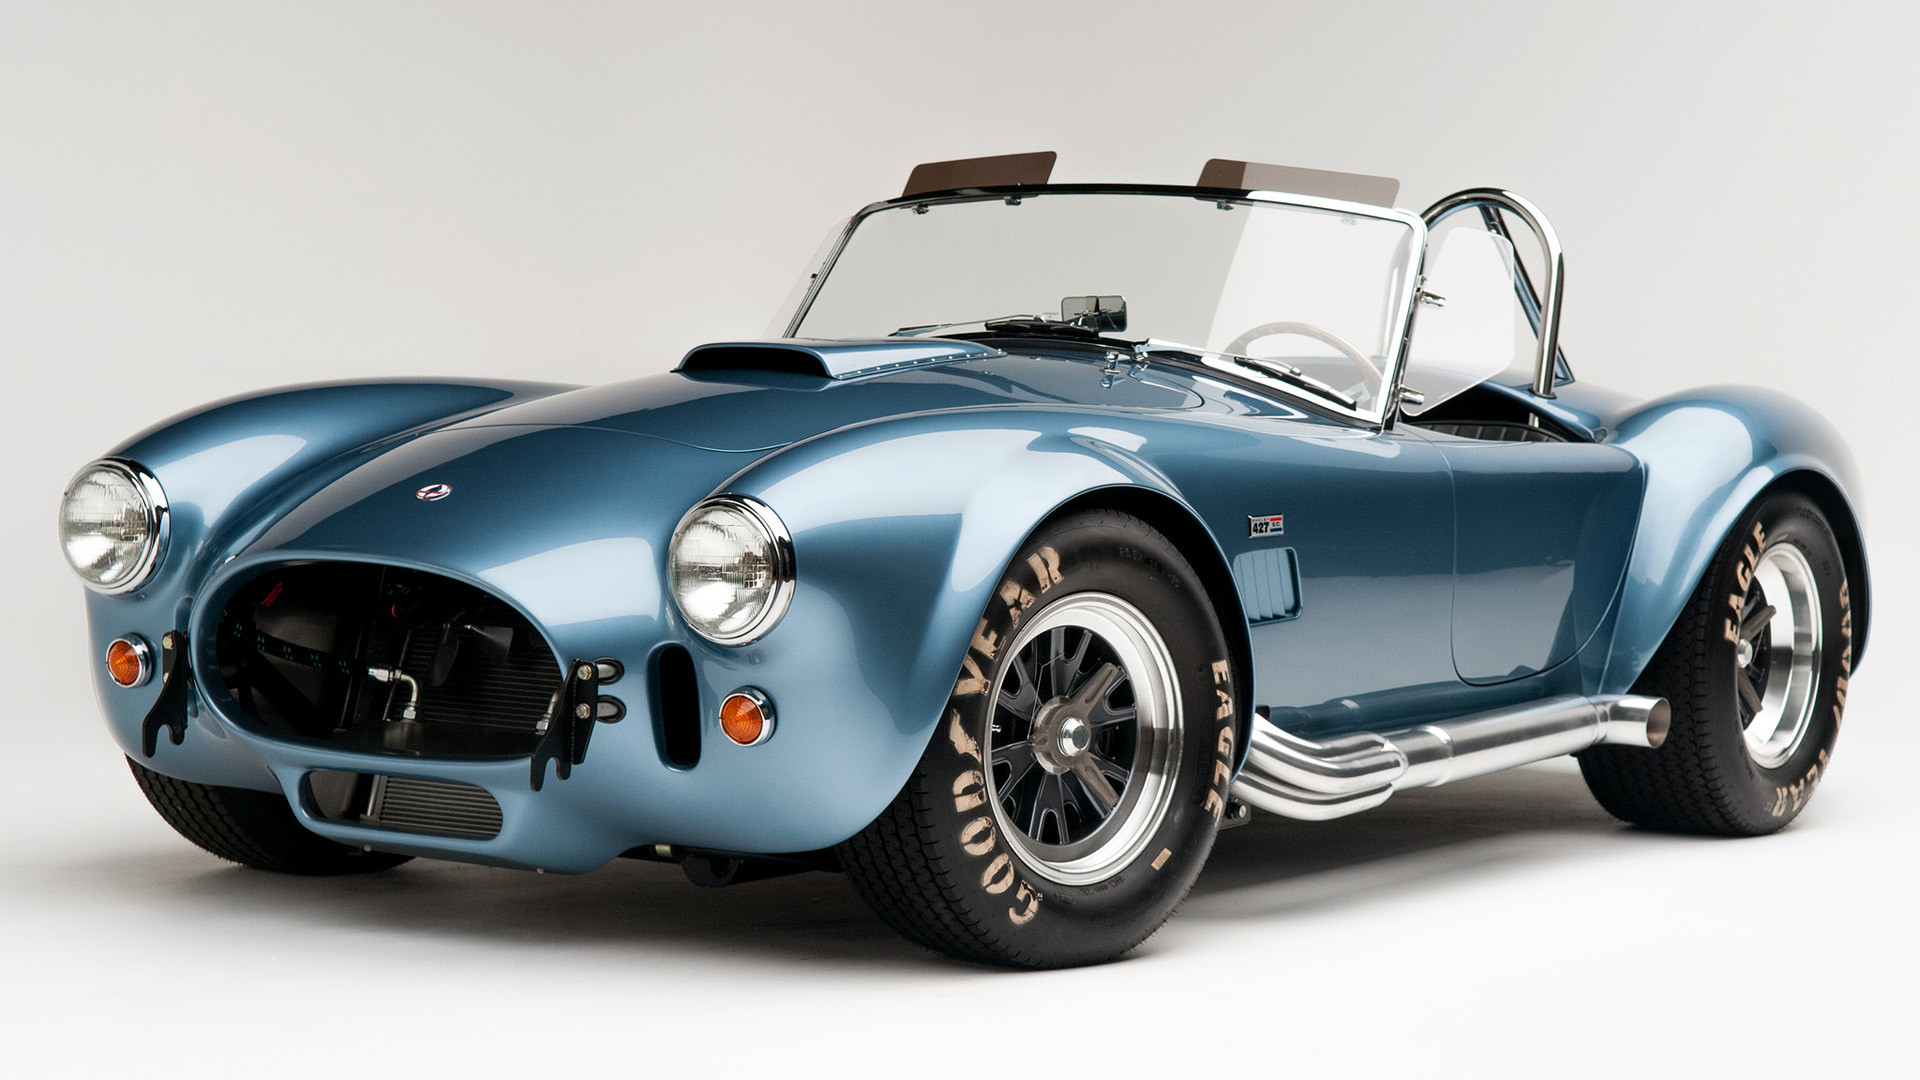 1965 Shelby Cobra 427 SC picture